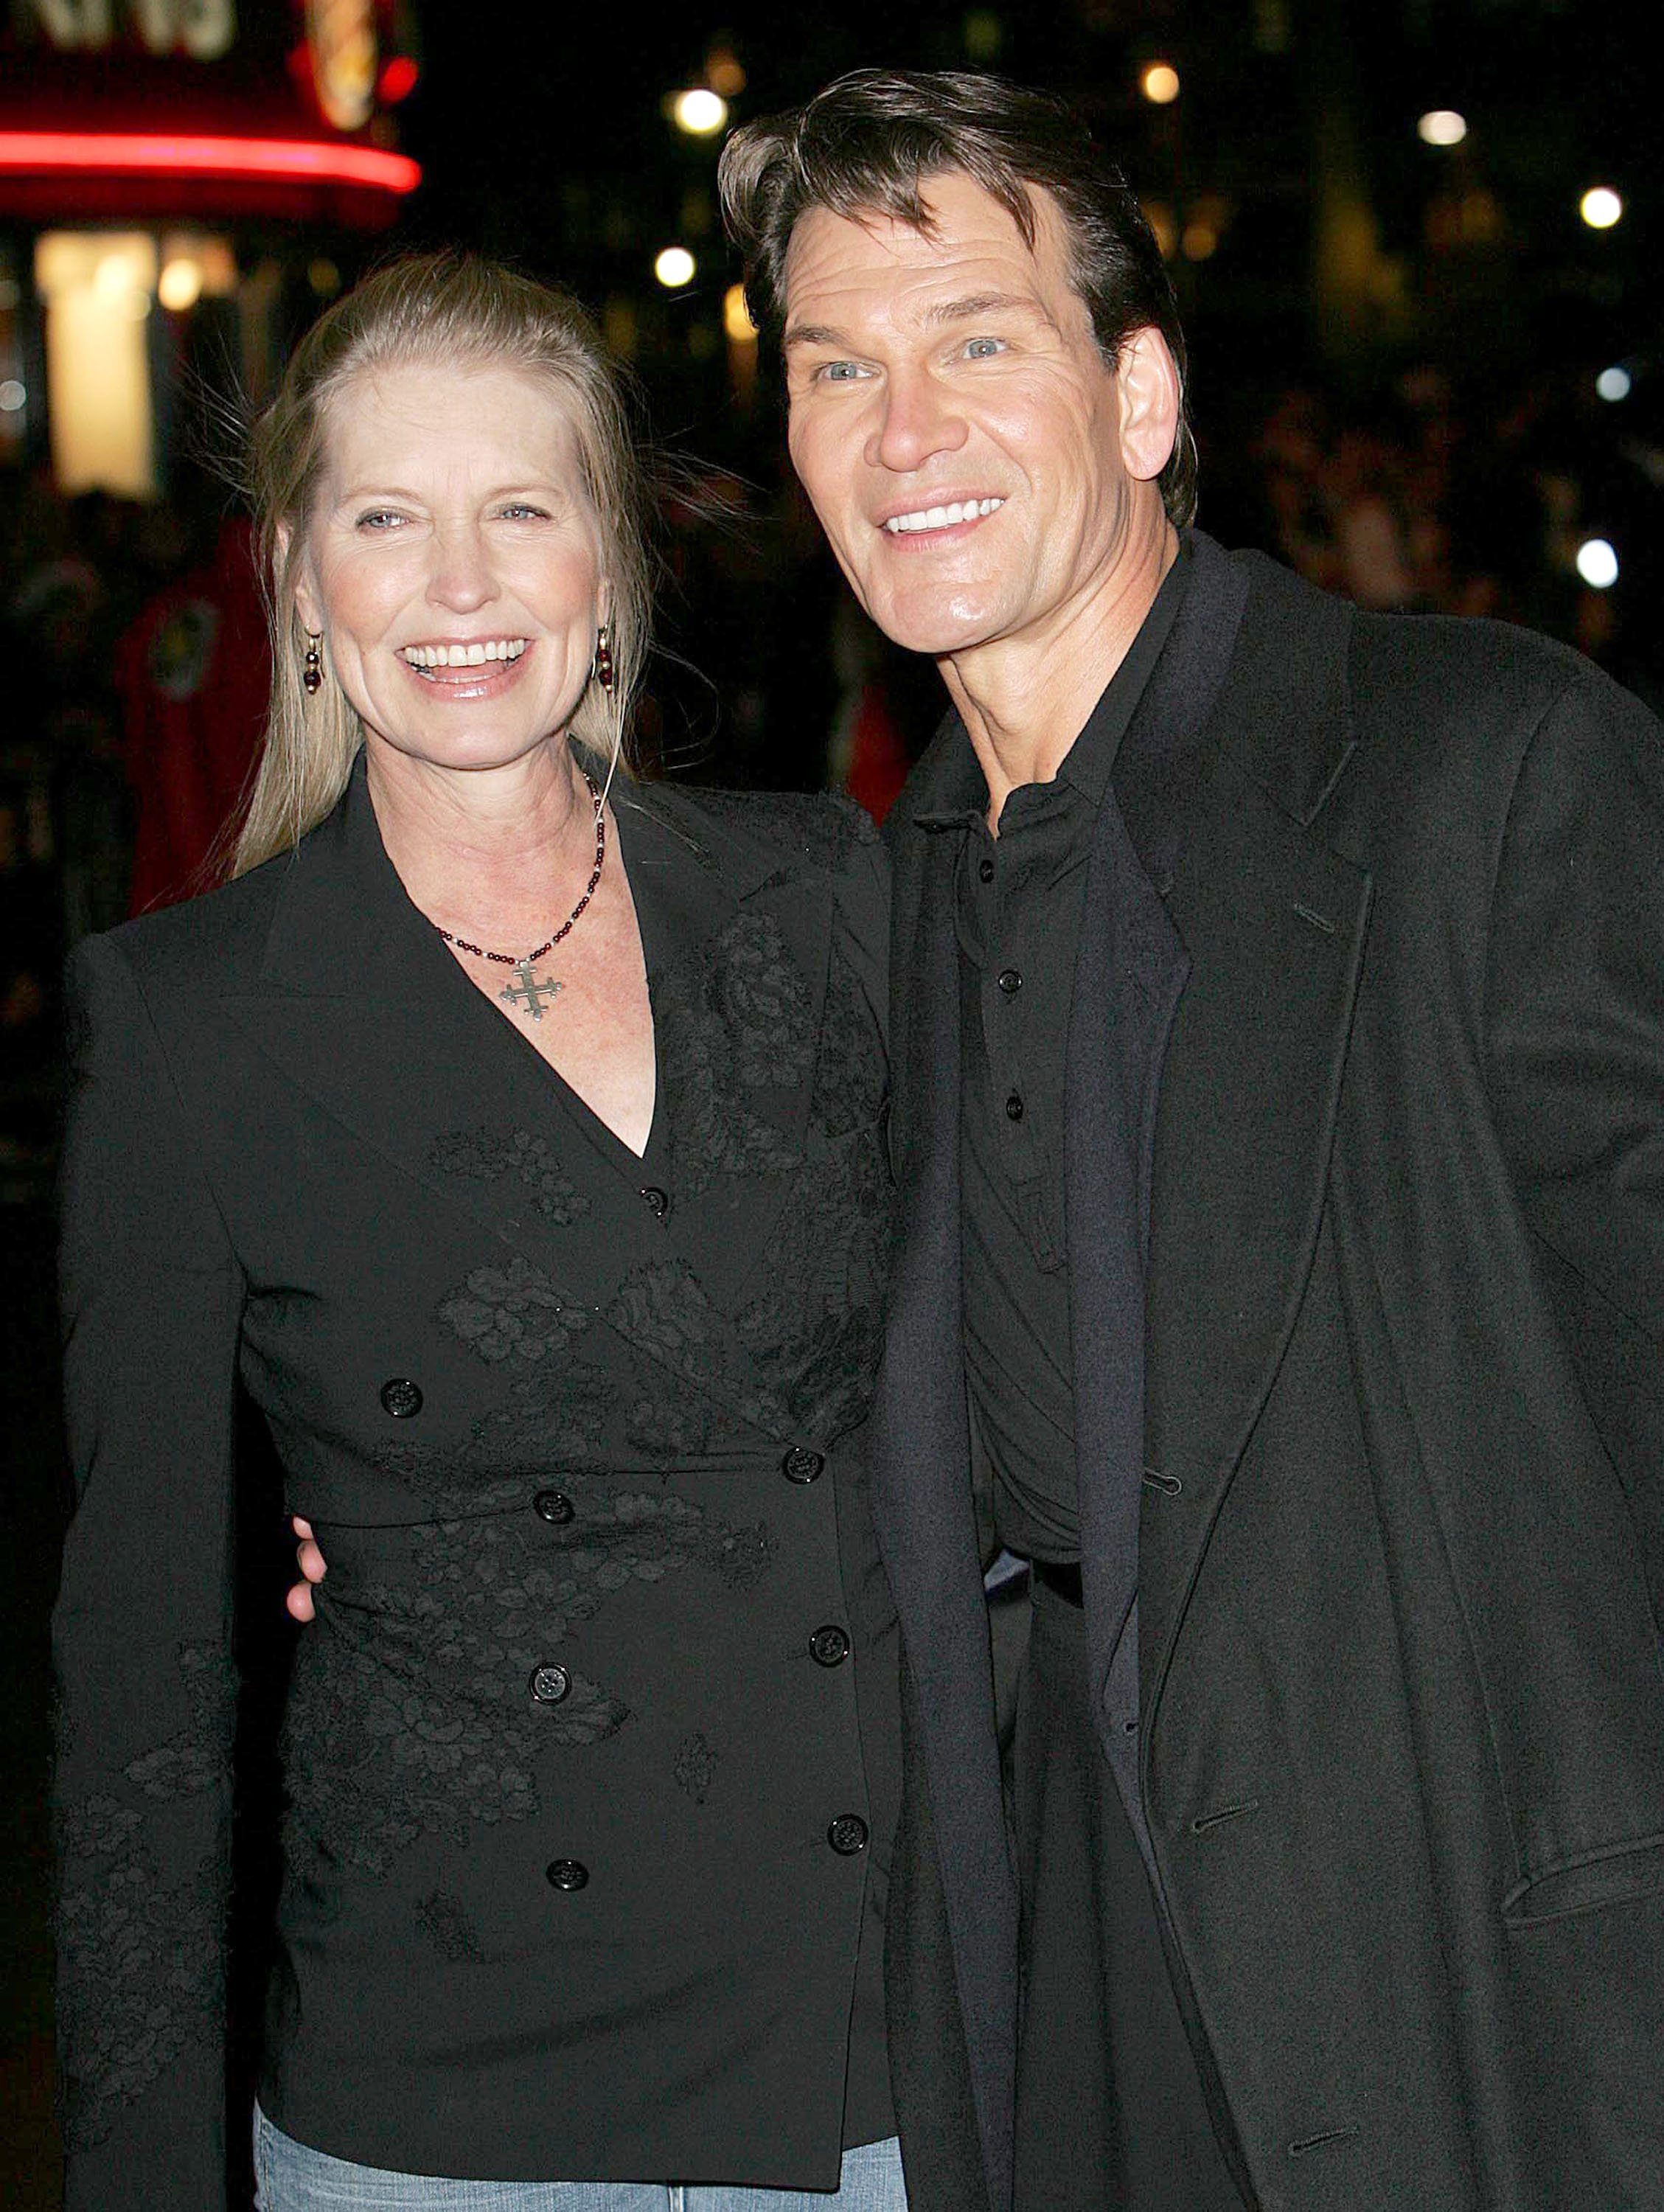 Patrick Swayze's Widow, Lisa Niemi, Talks About Life With The Late Actor